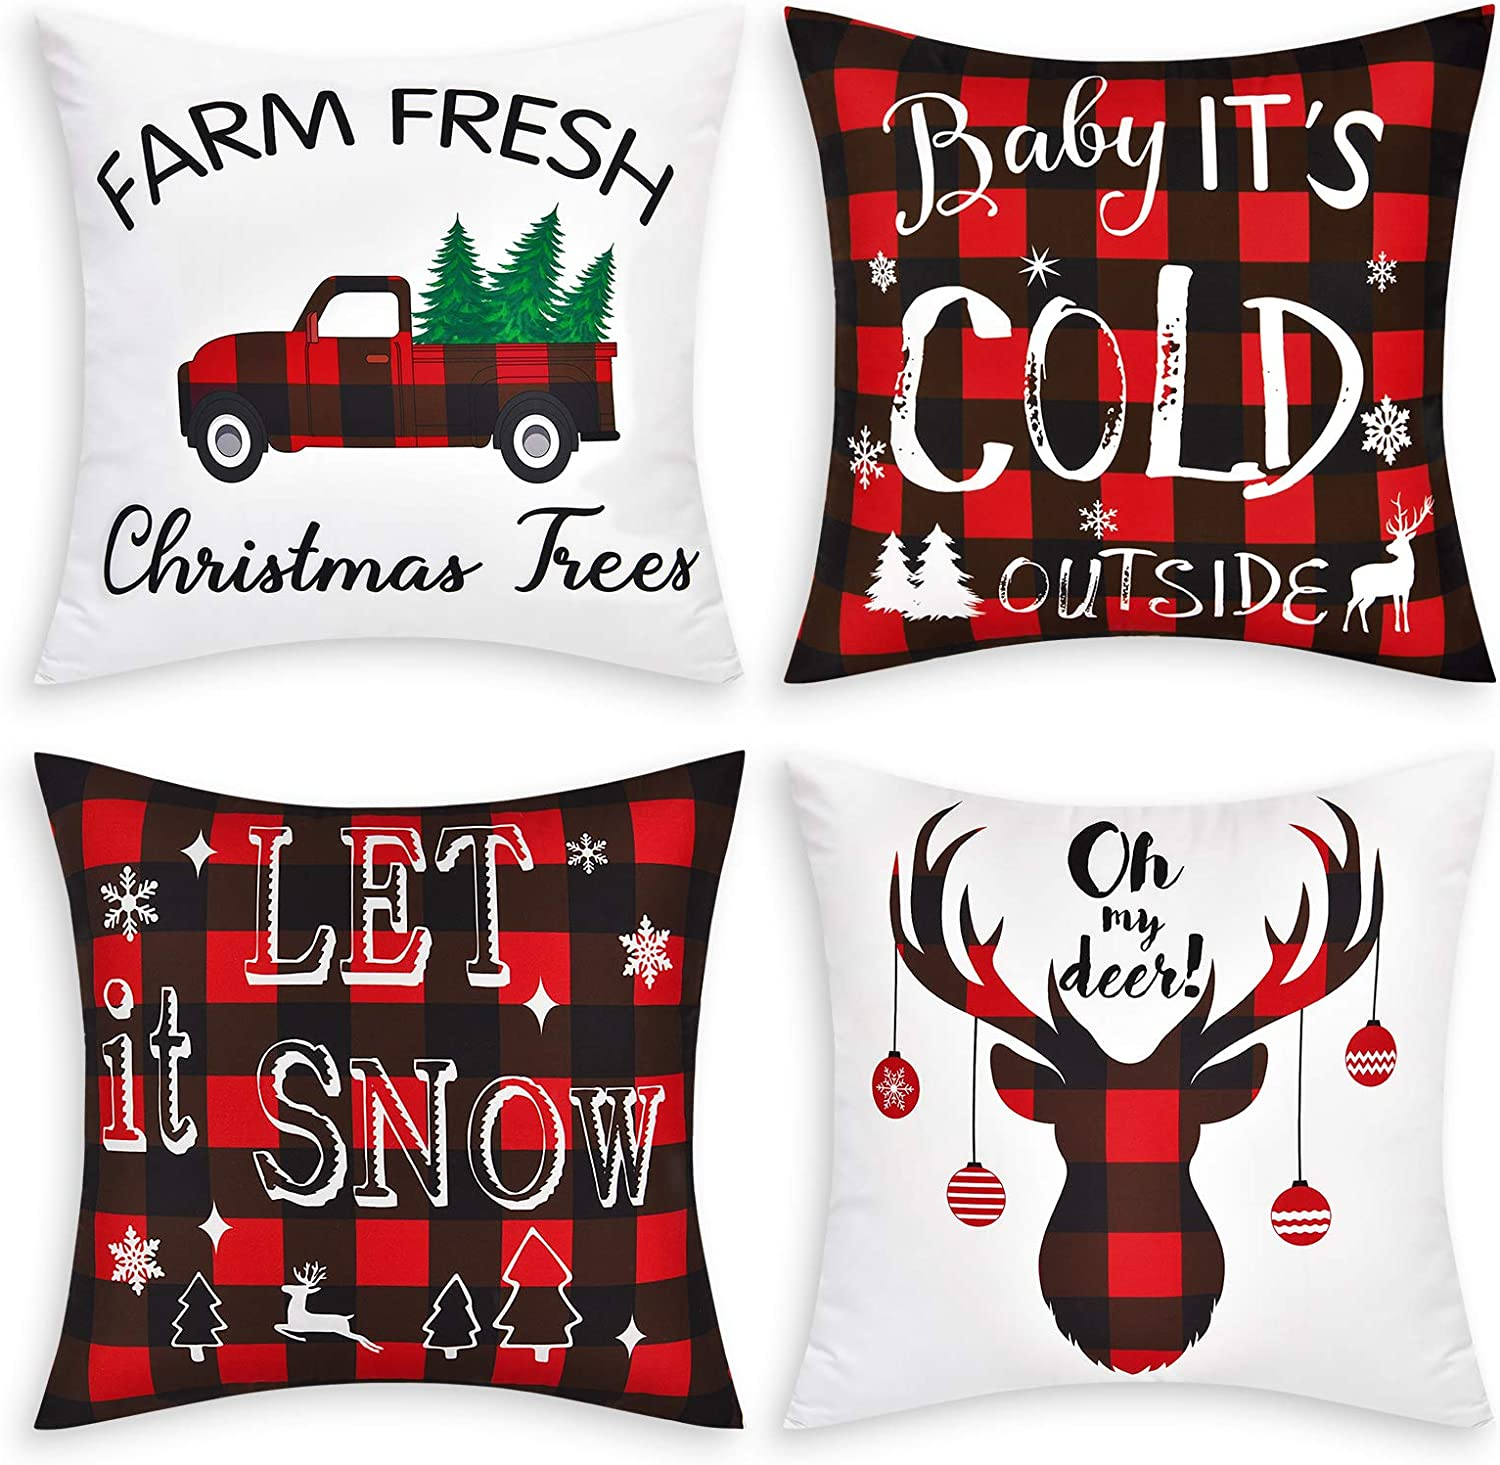 Set of 4 Christmas Red Grid Pillow Covers, Baby Its Cold Outside Pillow Covers, Farm Fresh Truck Deer Pillowcase Covers Cushion for Room, Chair, Car, 18 x 18 Inch